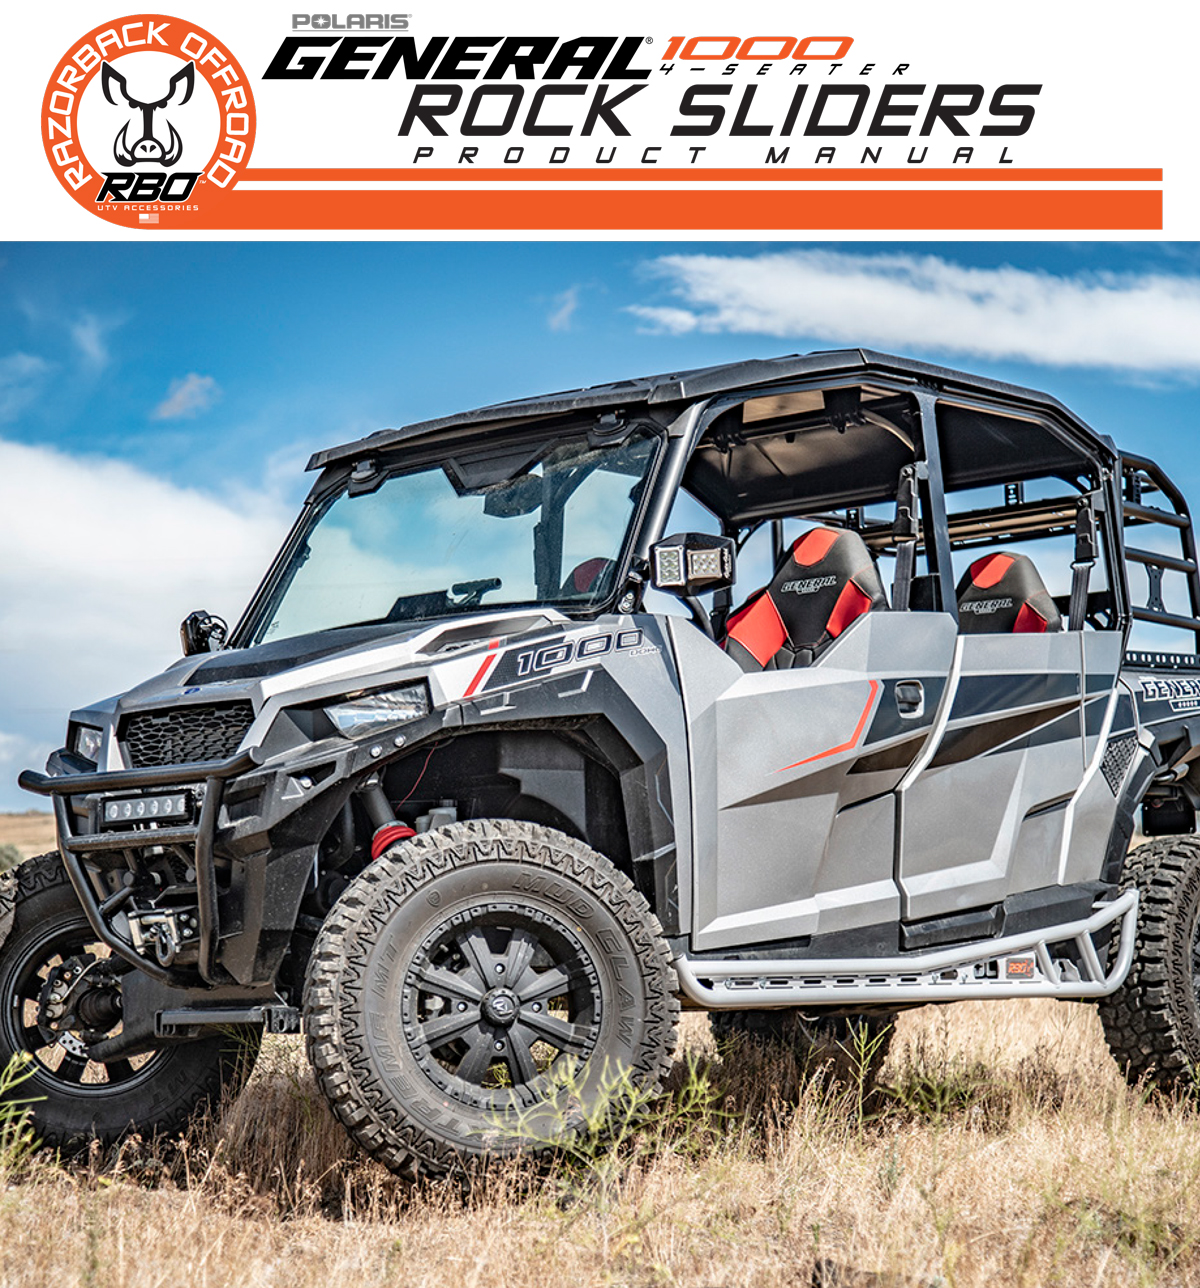 Razorback Offroad Polaris General 4 Seater Rock Sliders